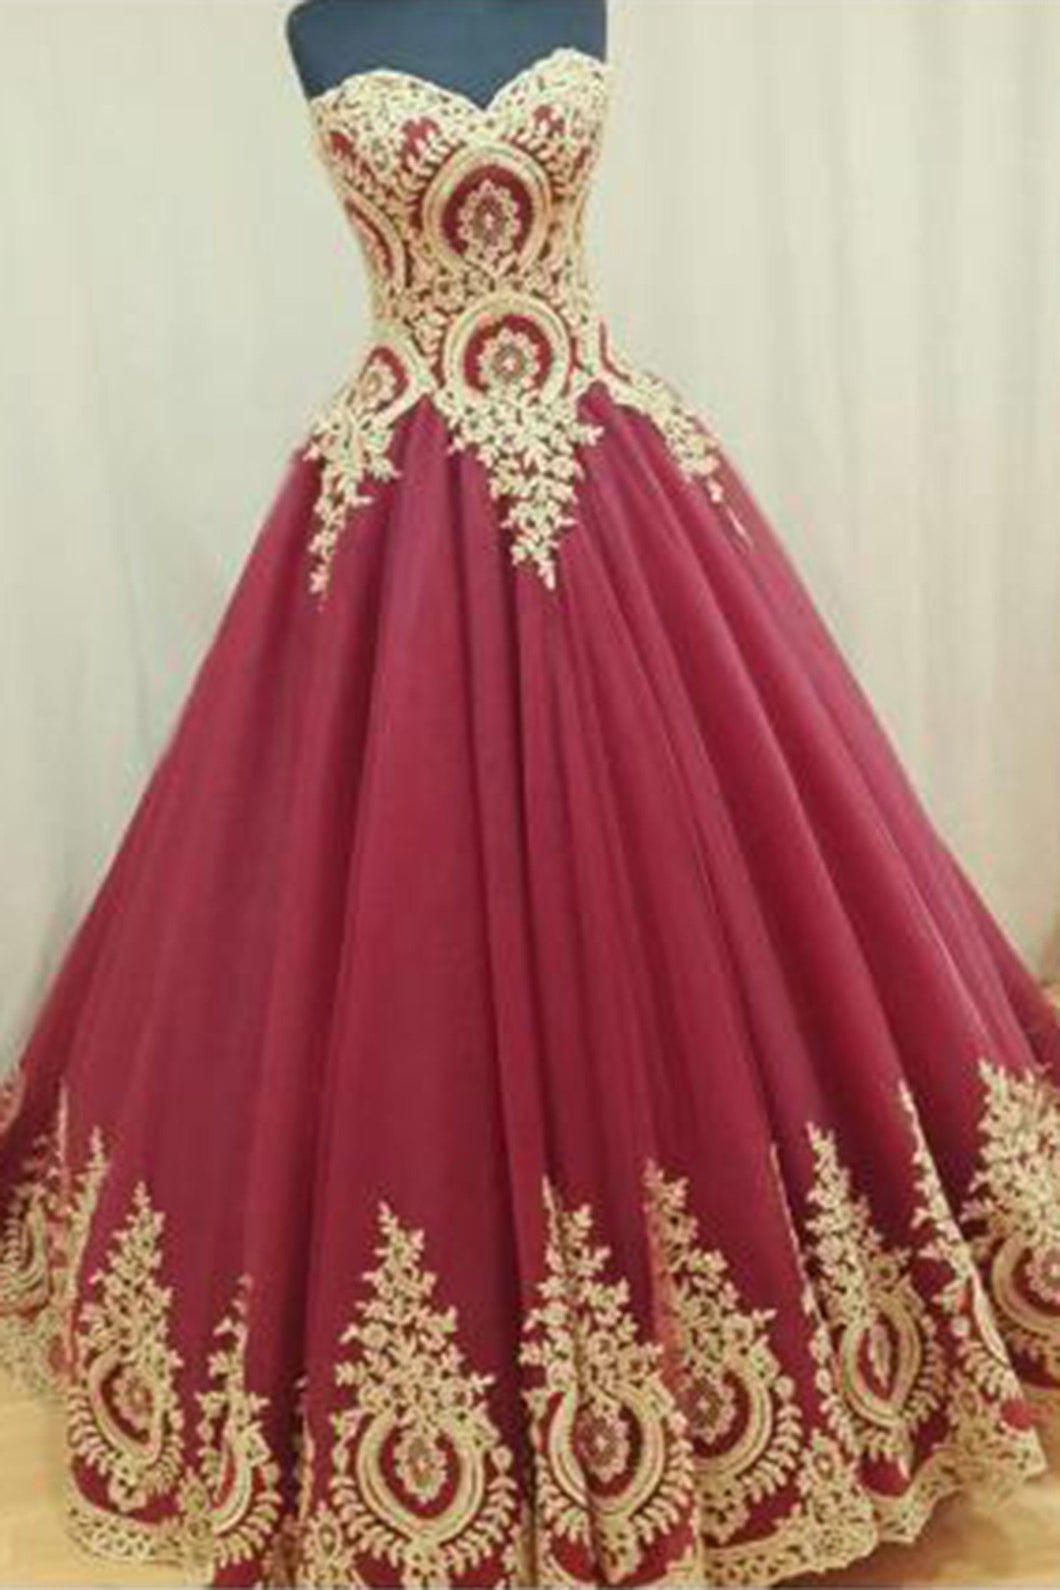 Sweet 16 Dresses | Red organza golden lace applique sweetheart A-line long dresses,floor-length dresses